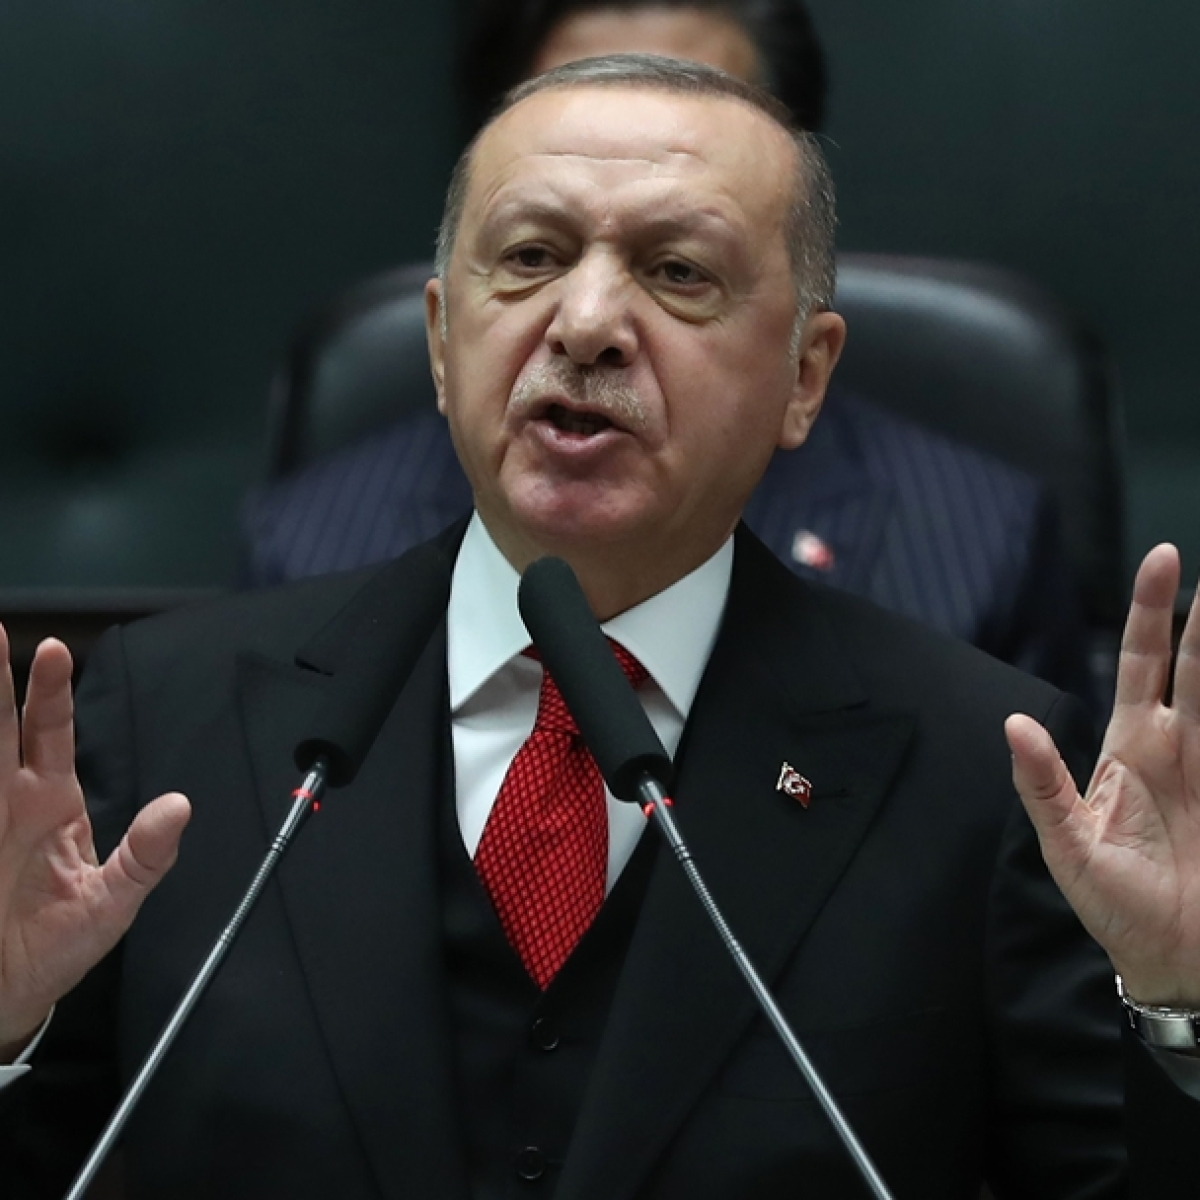 India issued a strong demarche to Turkey over its President Recep Tayyip Erdogan comments over situation in Kashmir